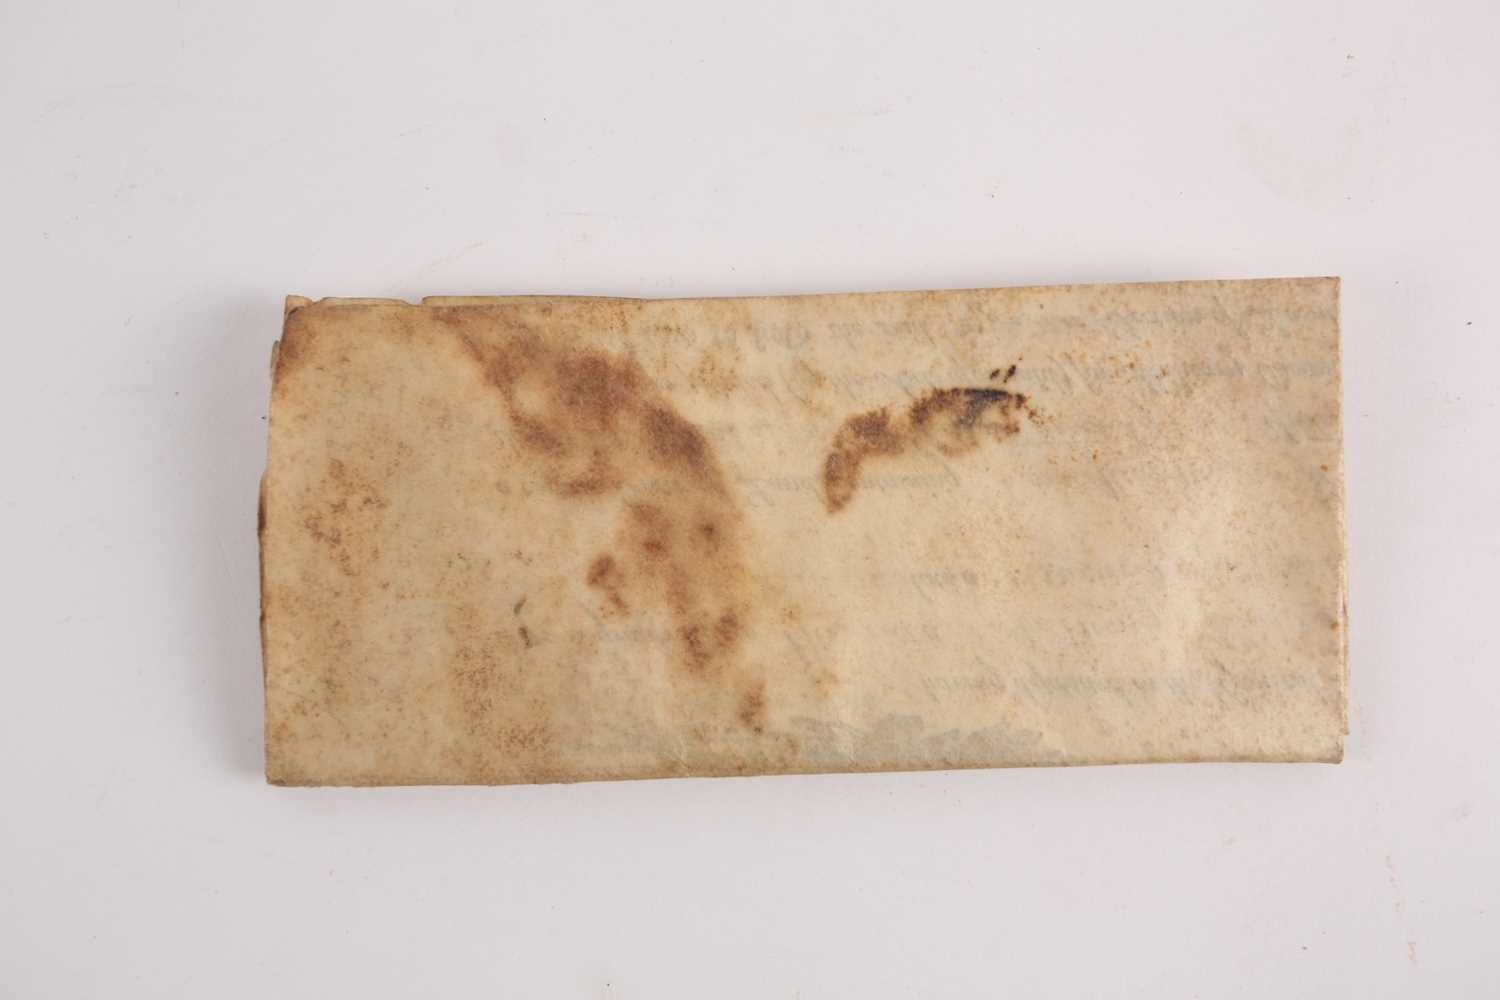 Historical American Interest. An early 19th-century velum land grant indenture signed by James - Image 3 of 4